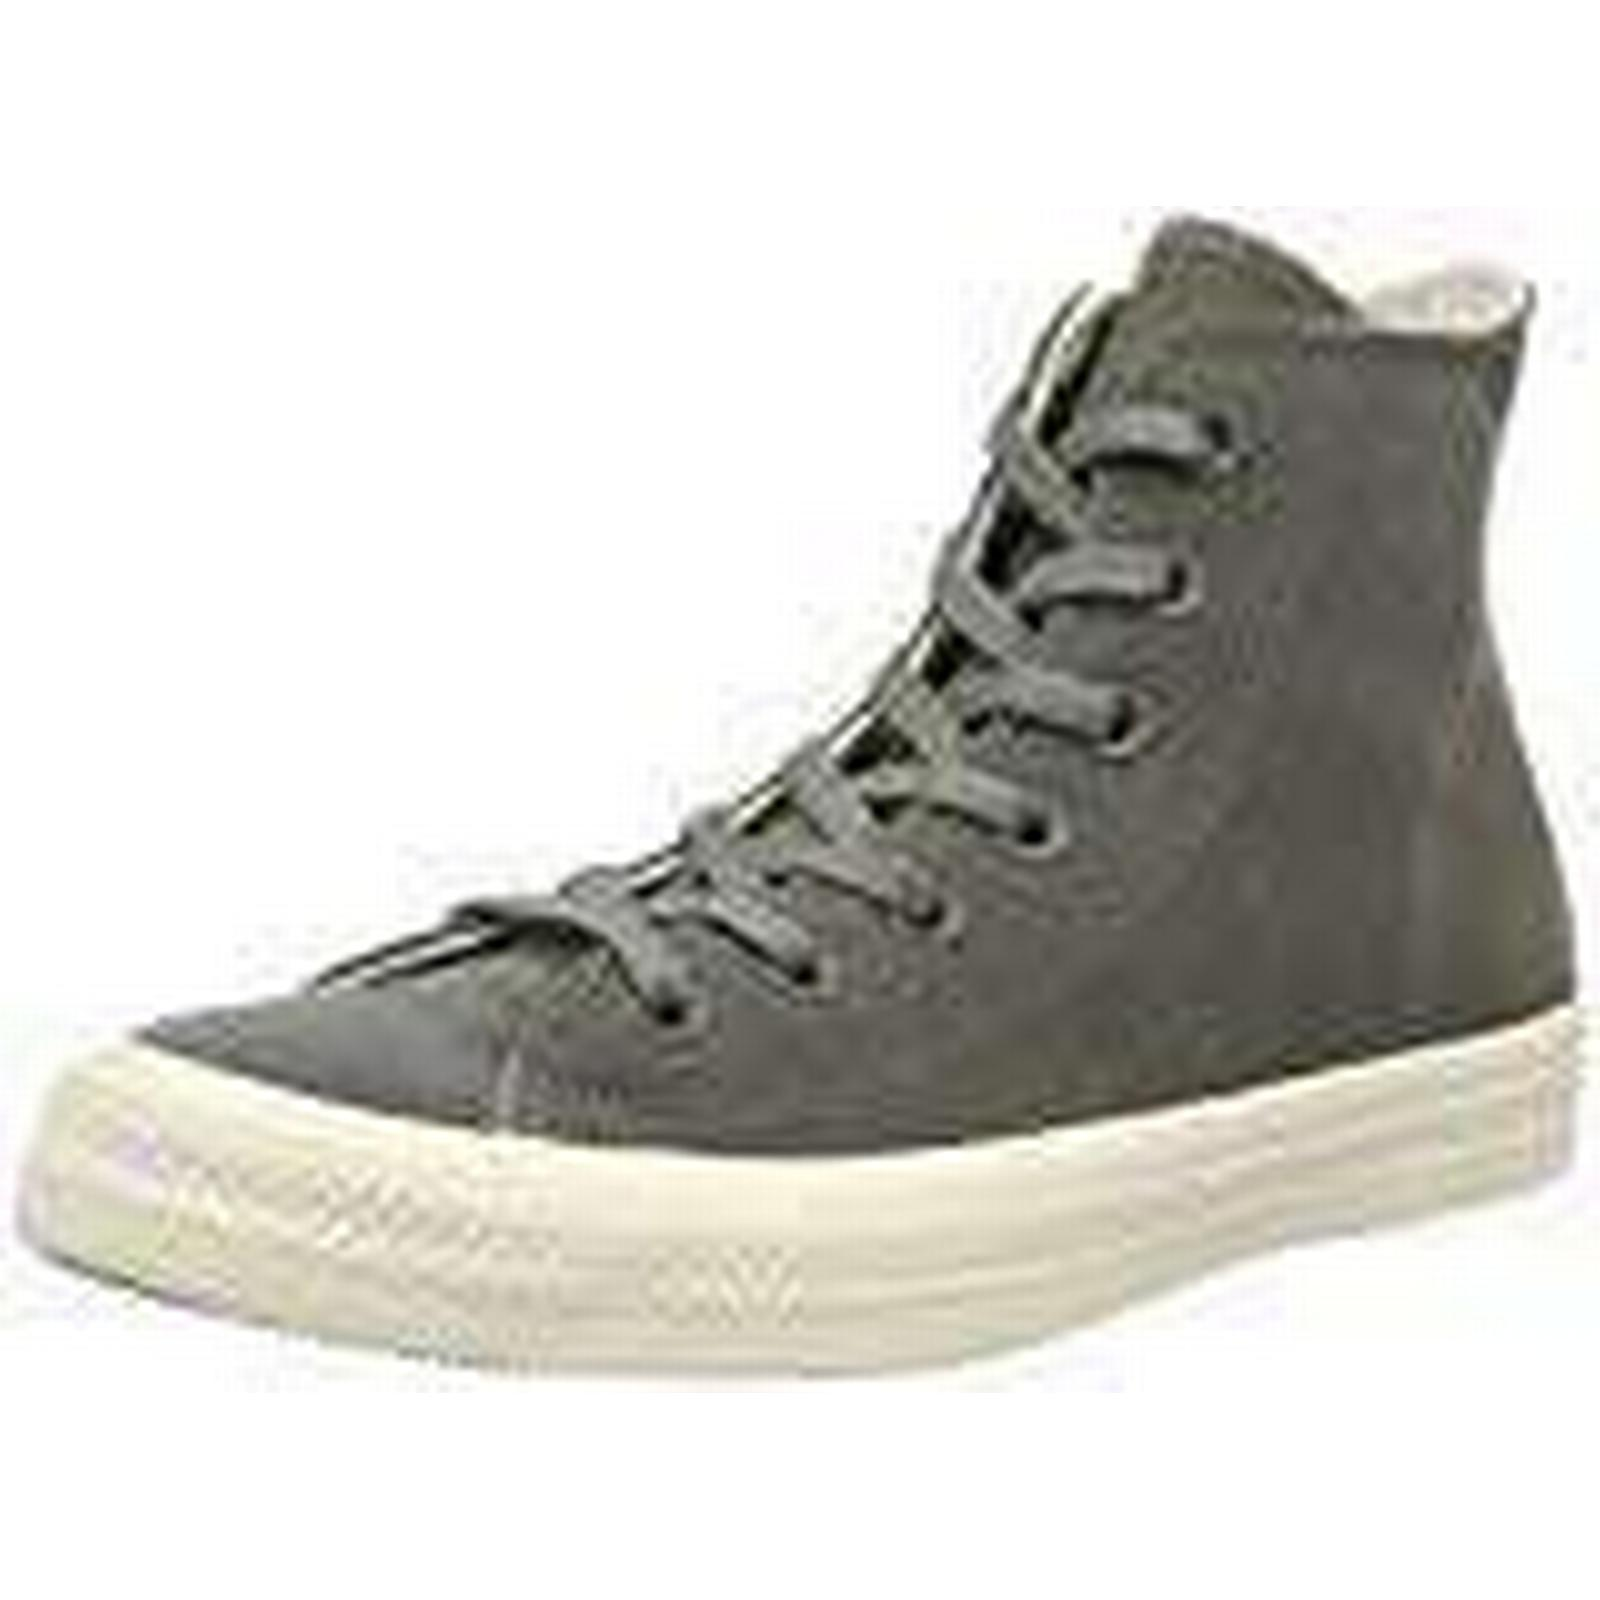 Converse Unisex Adults' Chuck Taylor Shoes, CTAS Hi Leather Fitness Shoes, Taylor Grey (River Rock Driftwood 088), 6 UK 6 UK ce5b59